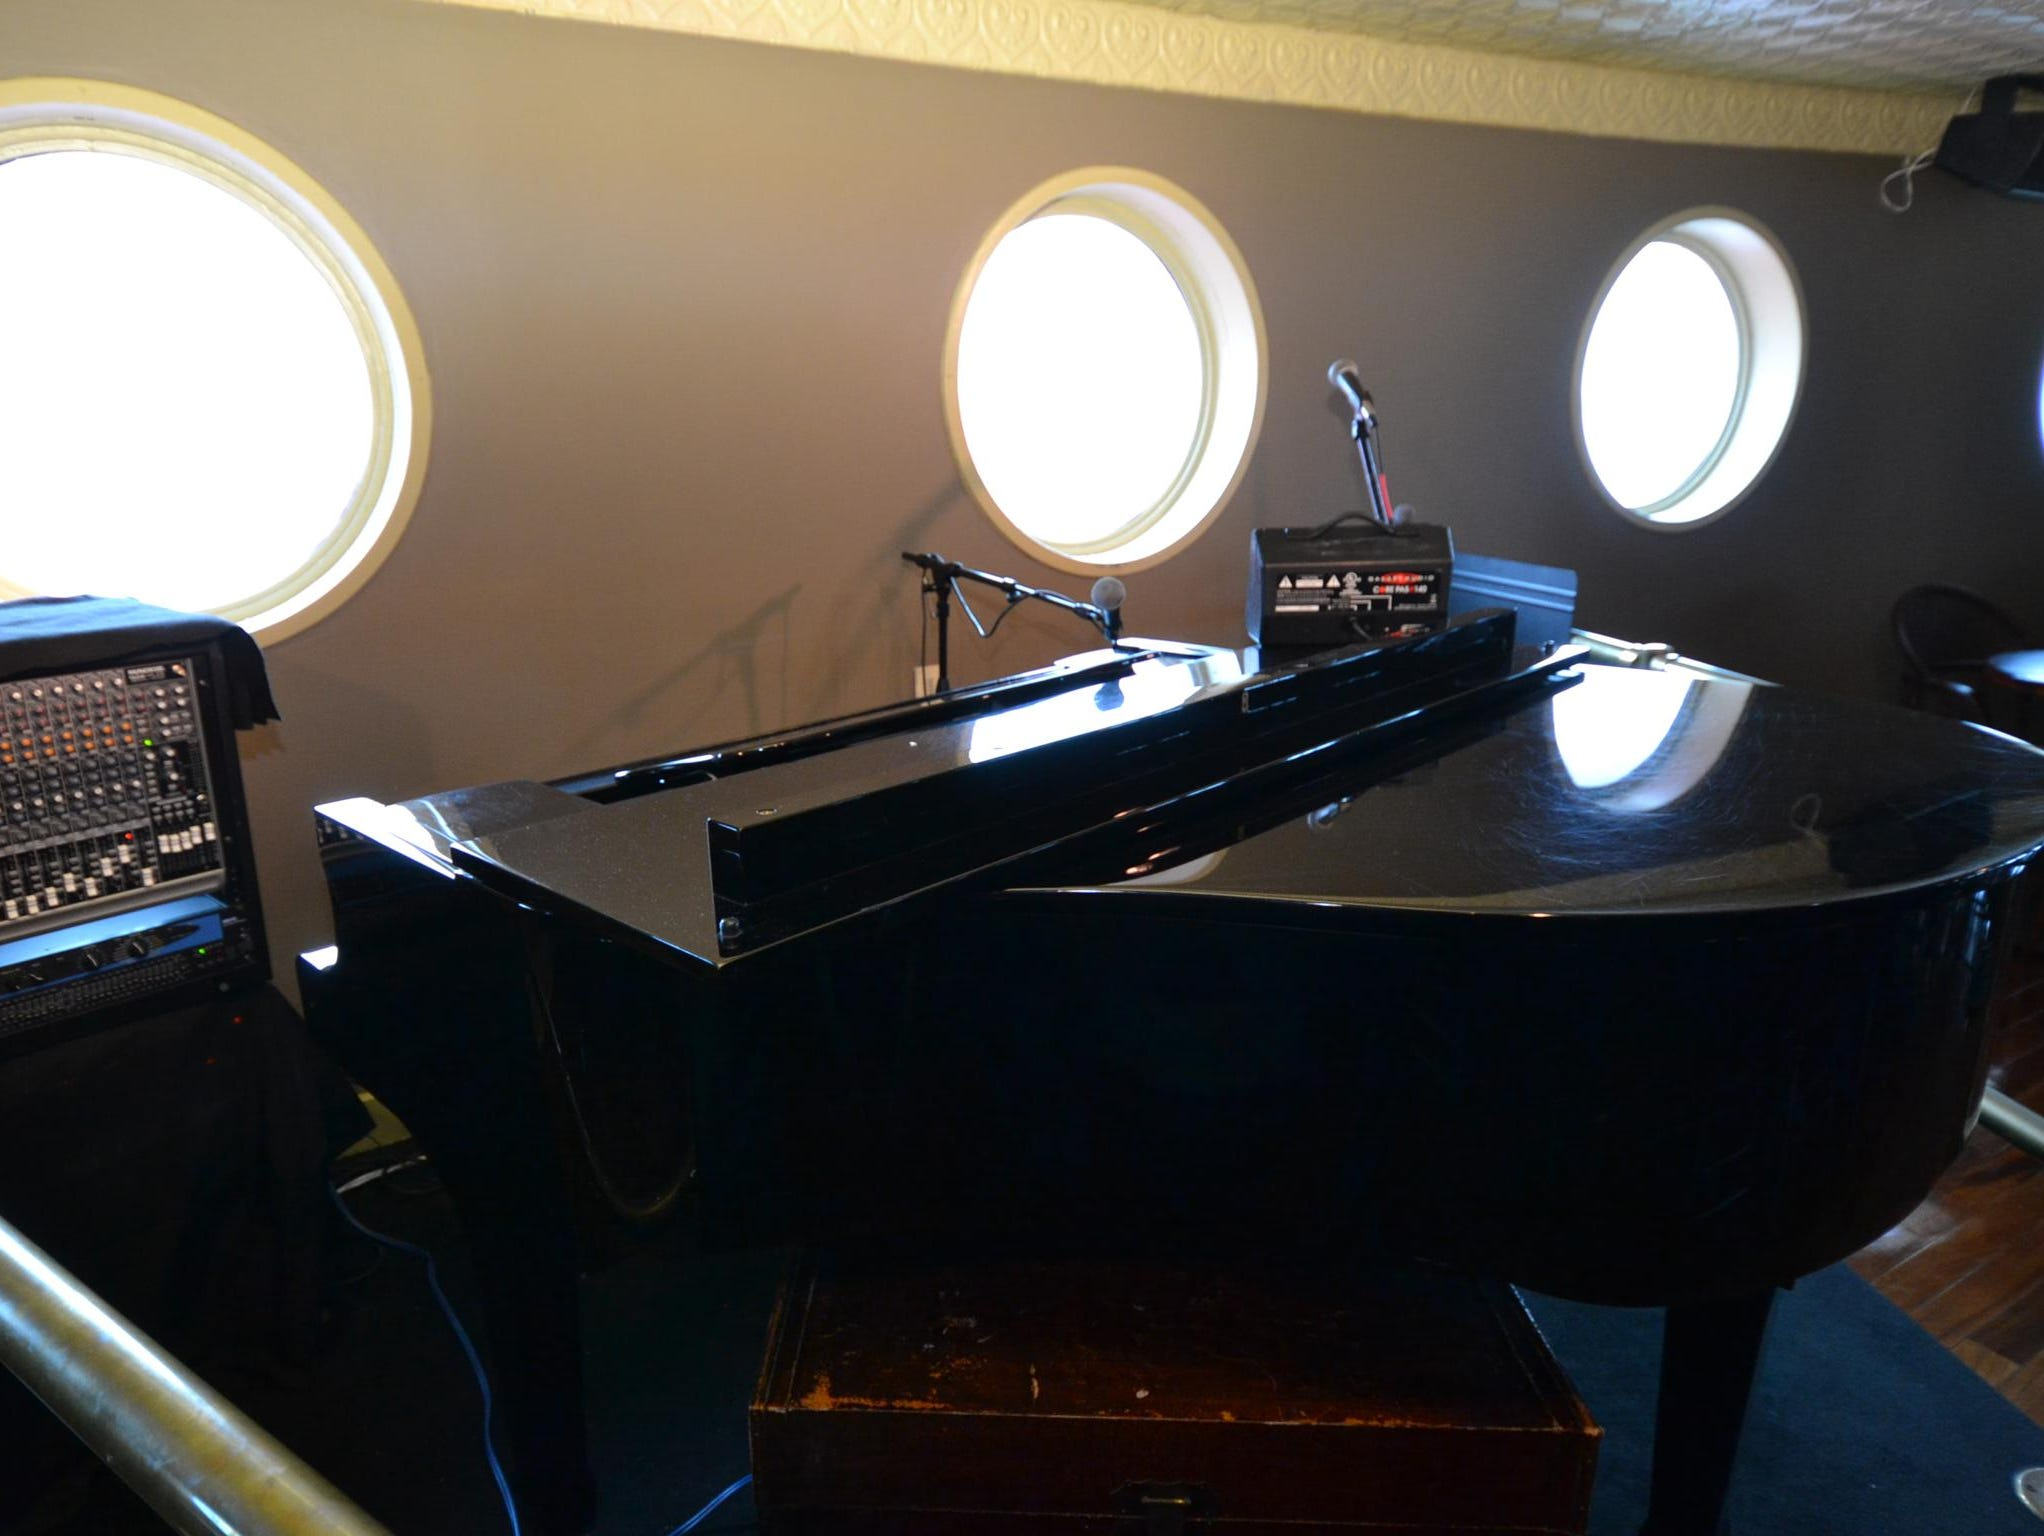 Piano music is a staple of the Engine Room Bar, which has portholes looking out over the American Queen's paddle wheel.